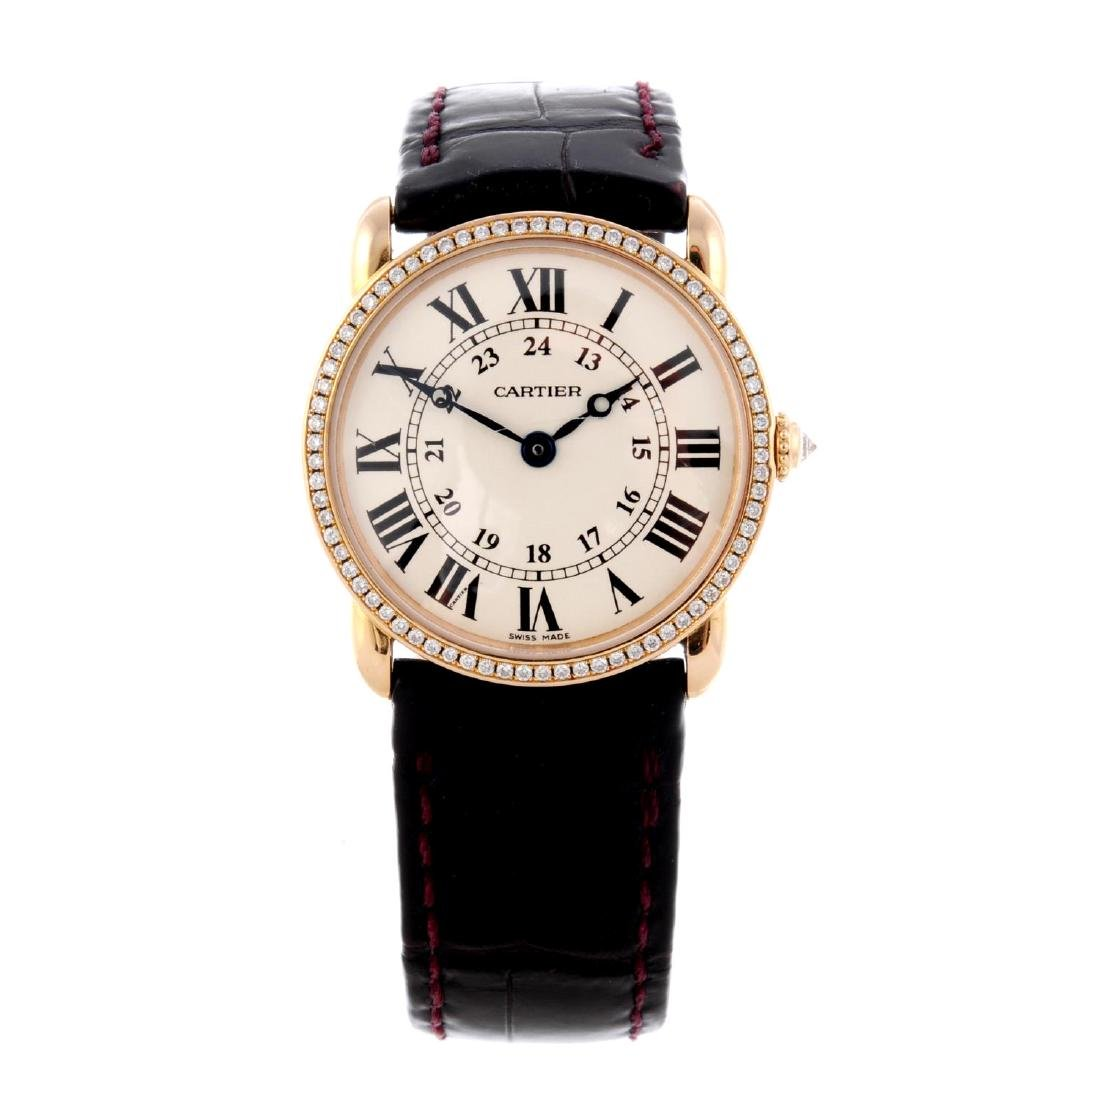 CARTIER - a Ronde Louis Cartier wrist watch. 18ct